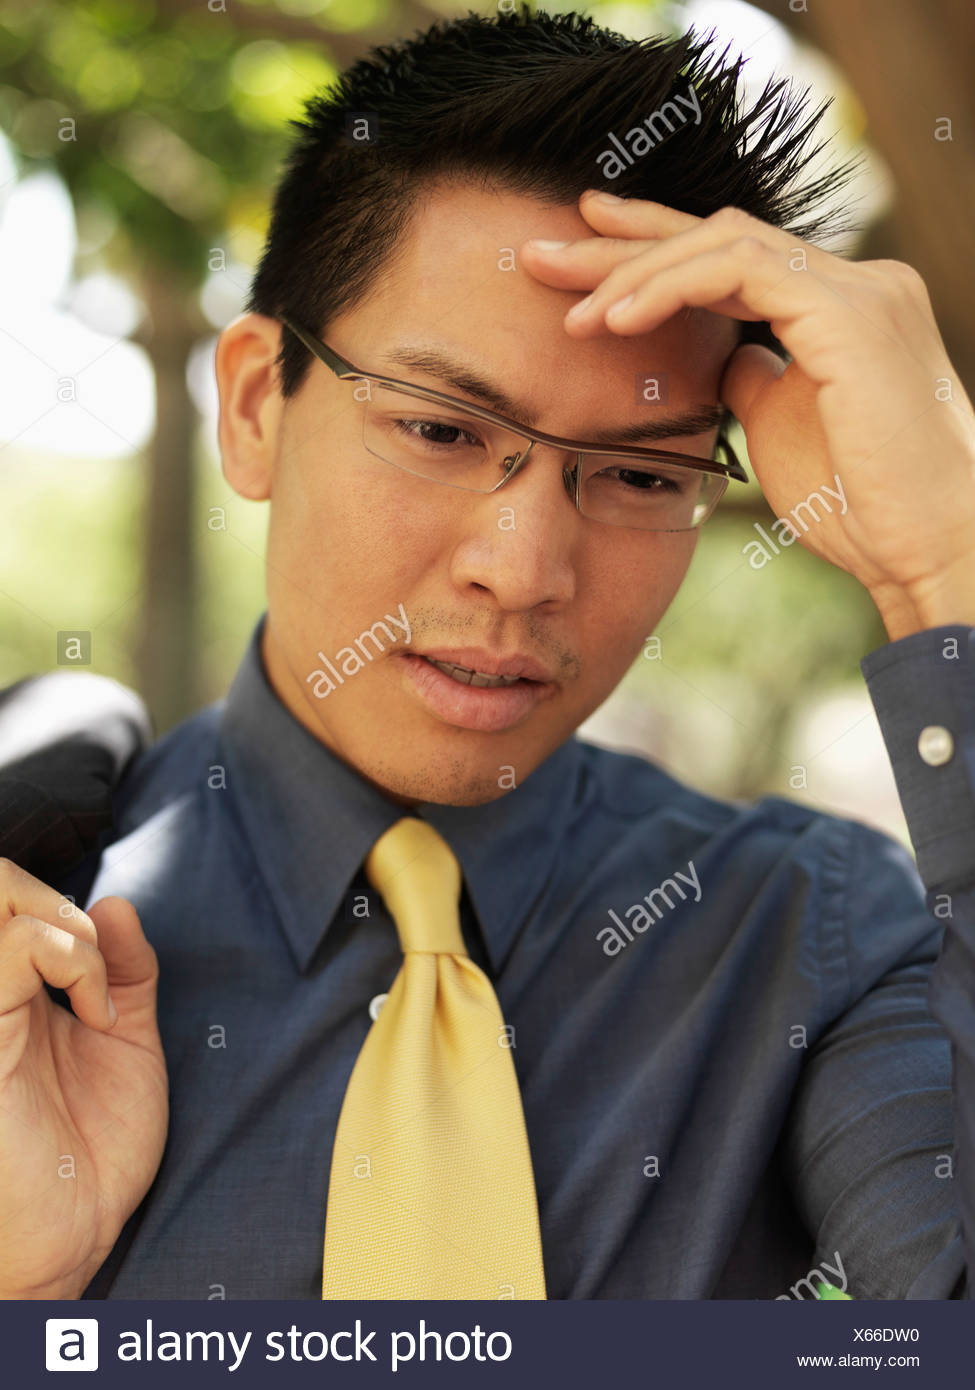 A businessman holding his forehead and grimacing - Stock Image